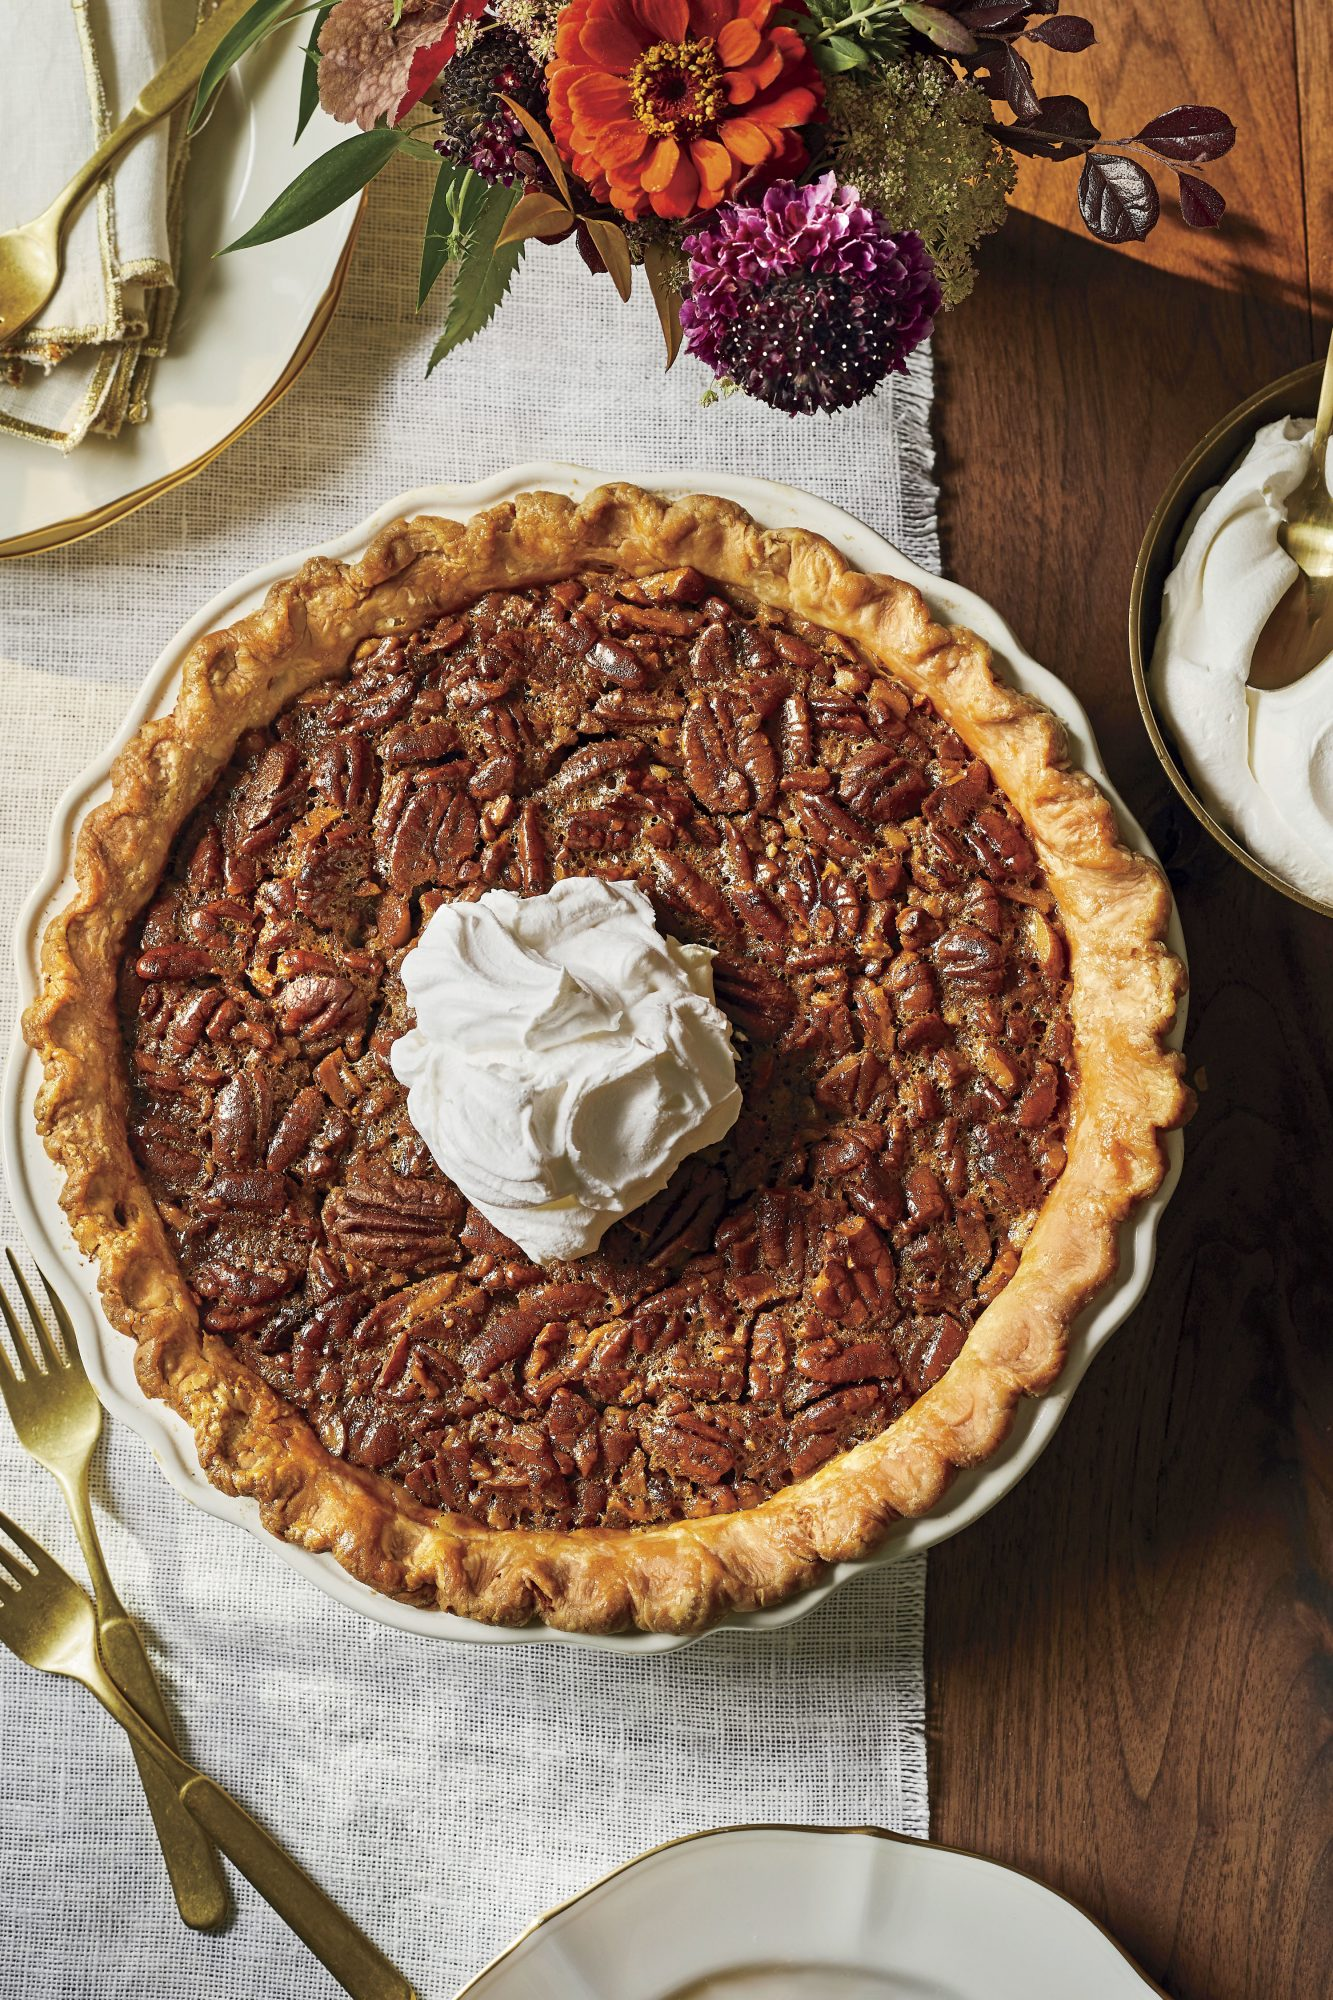 Oxbow Bakery Pecan Pie